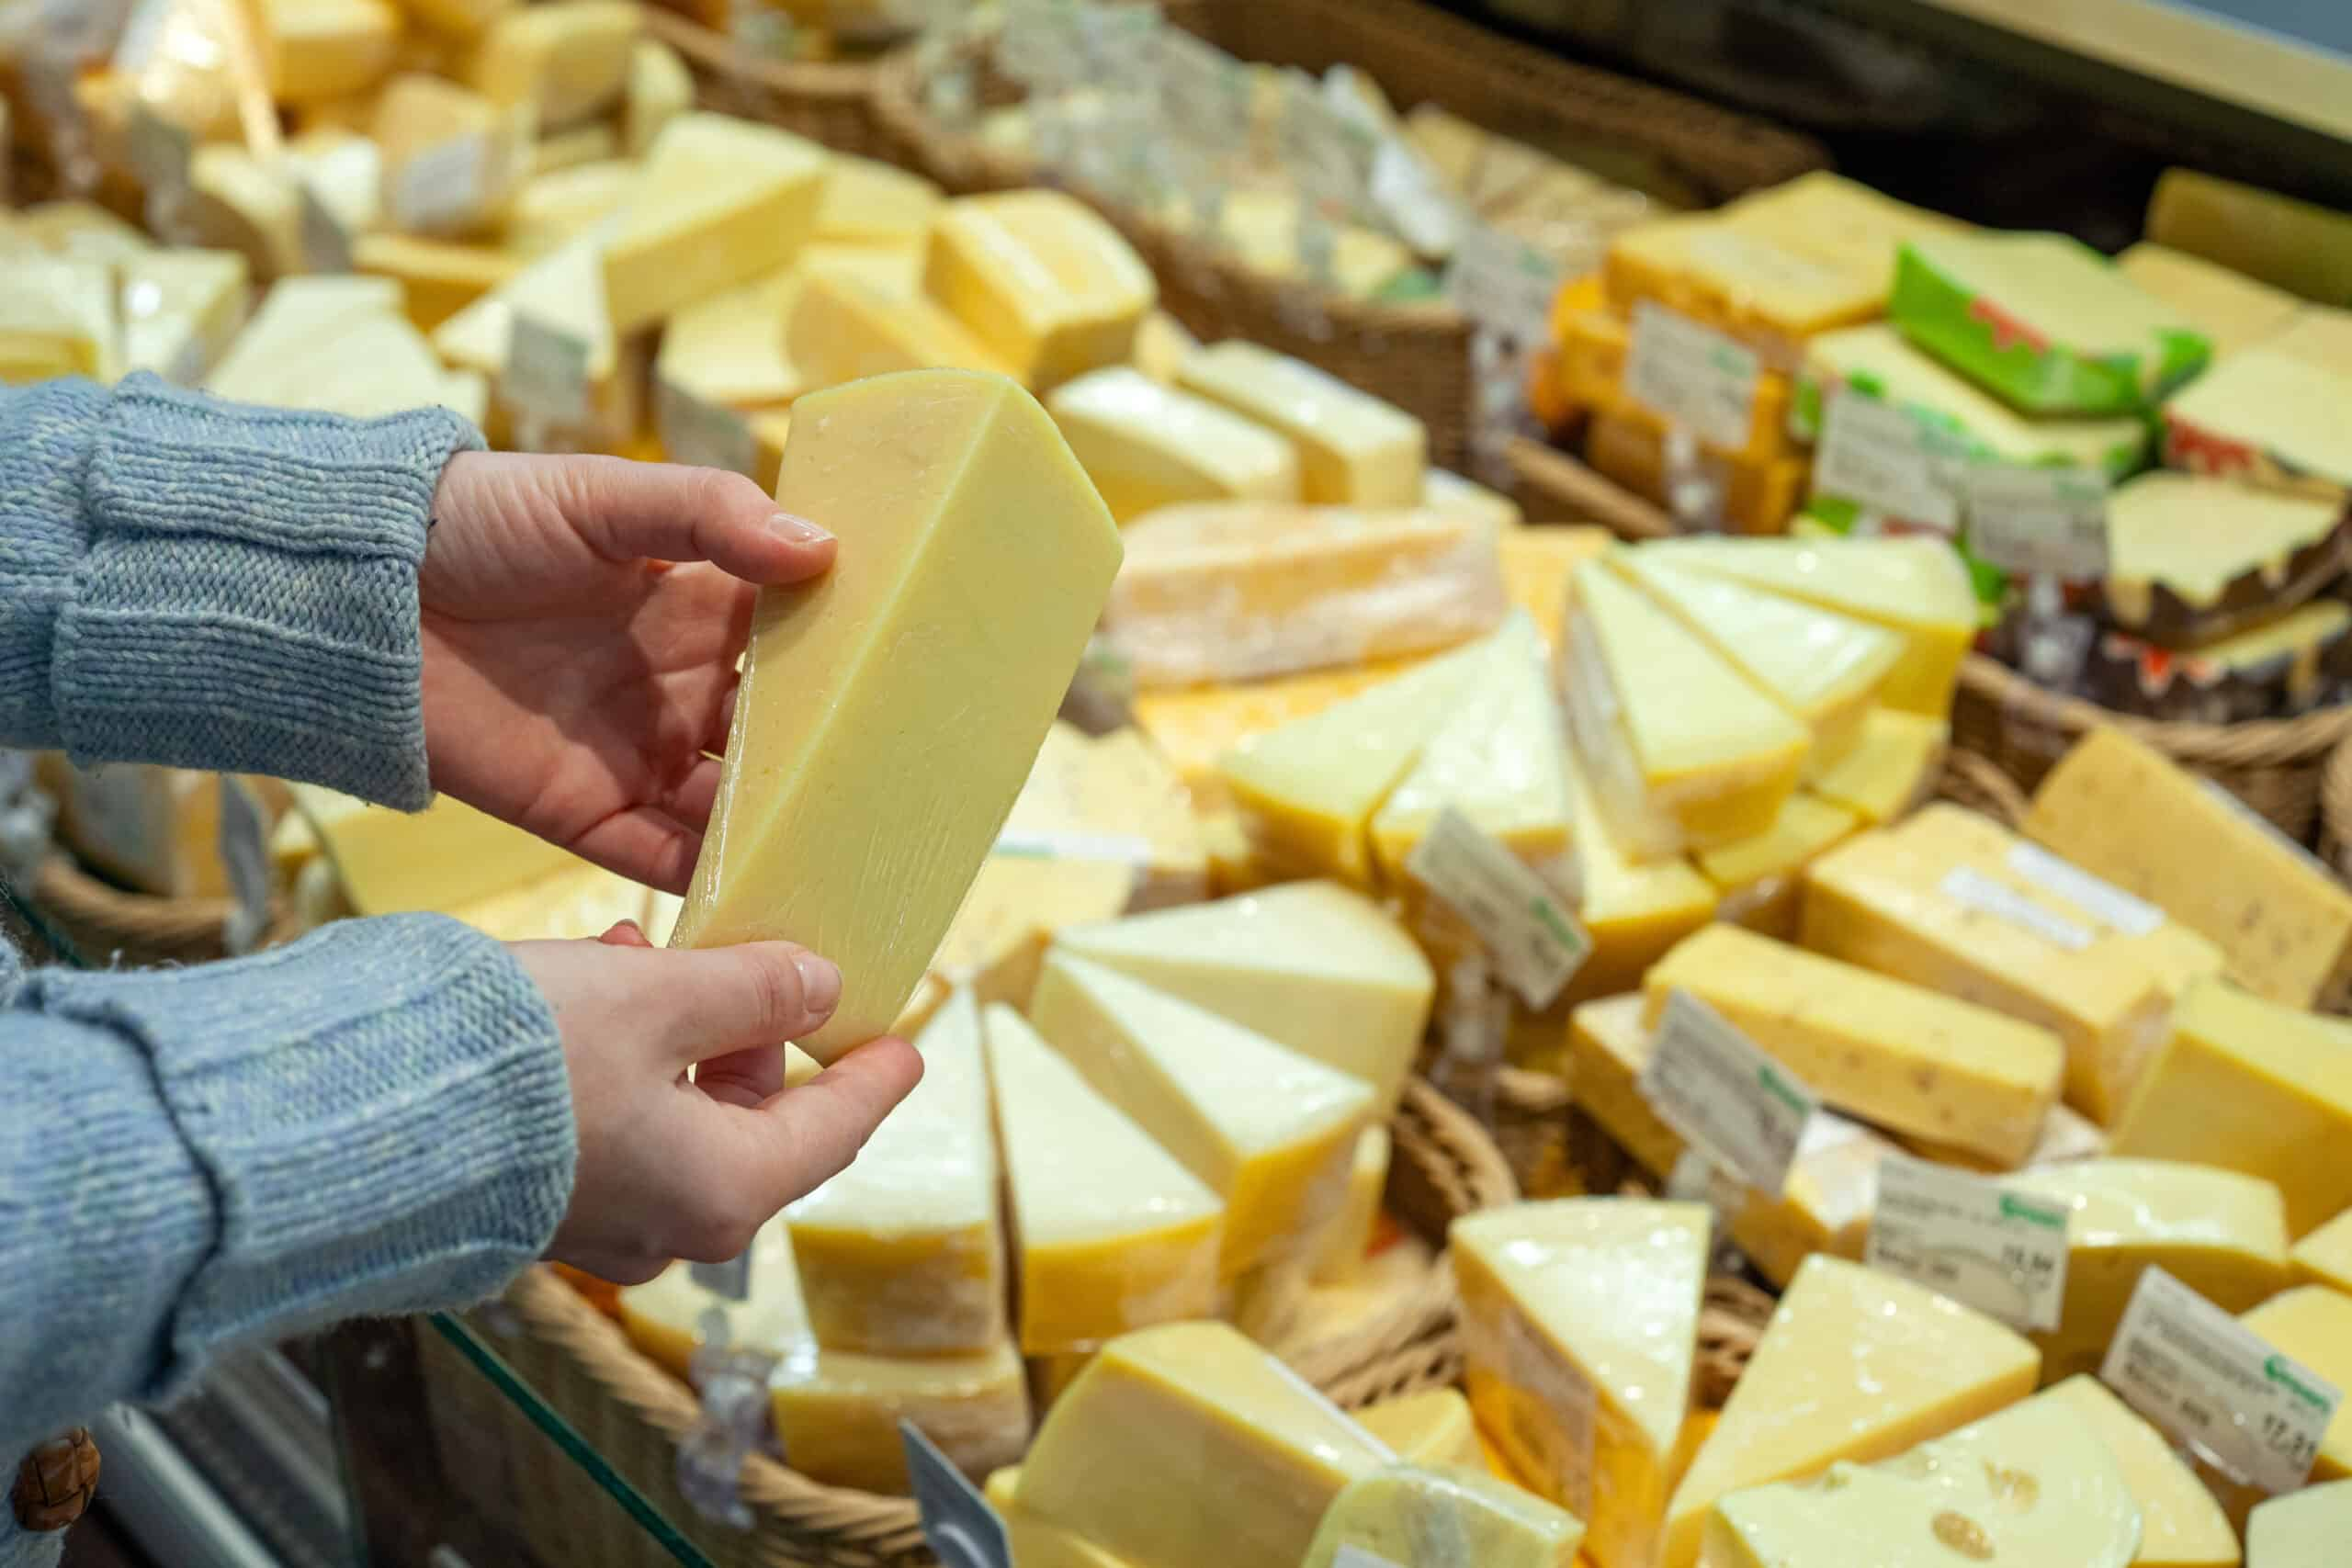 person holding packaged cheese